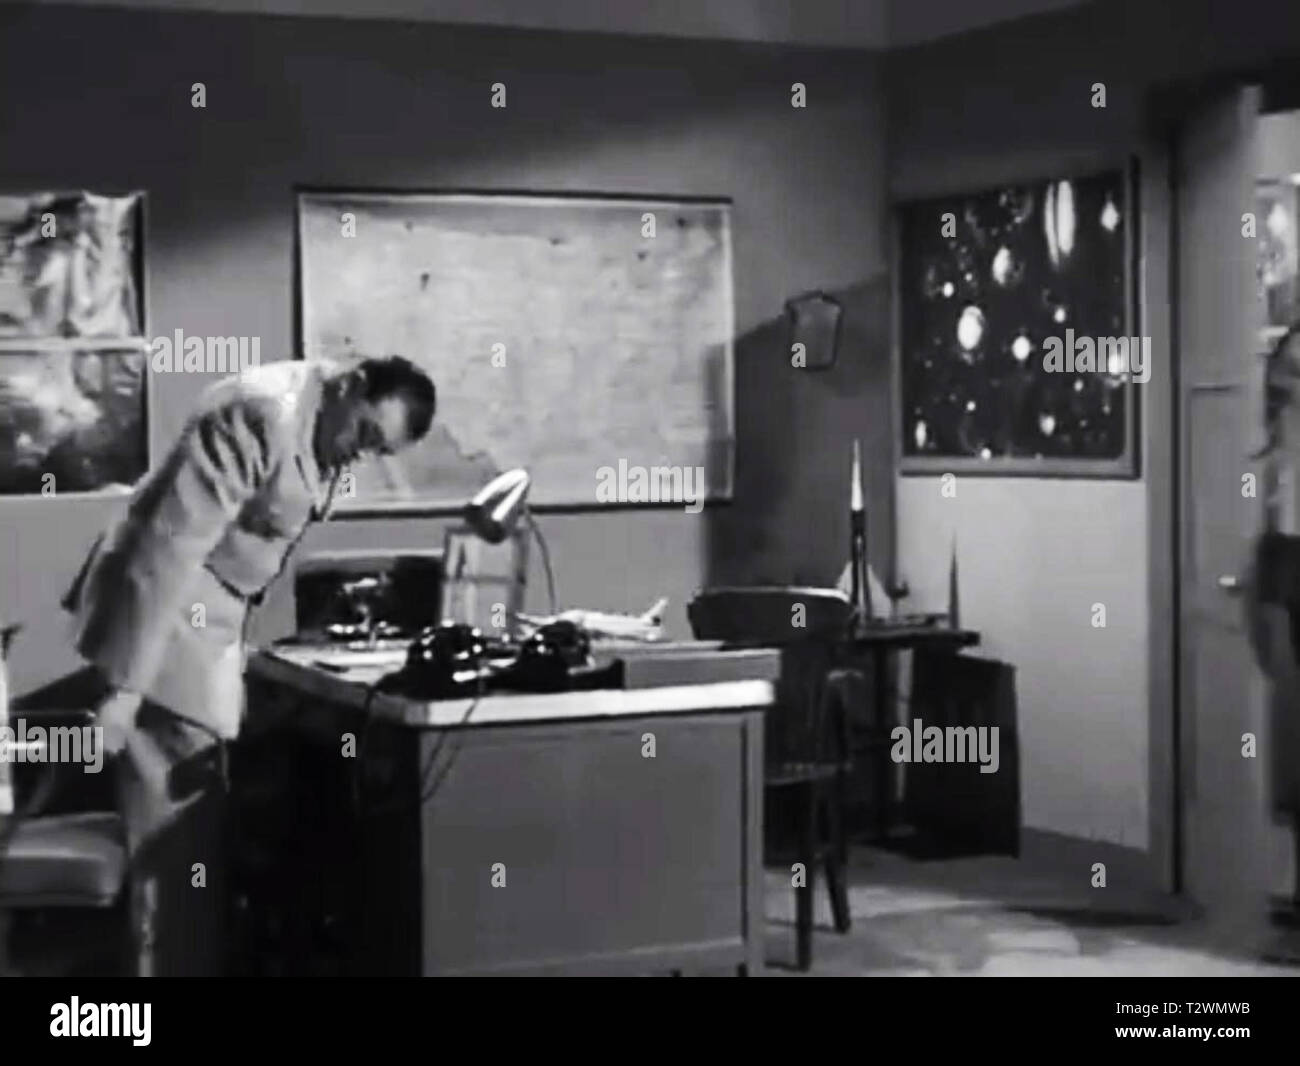 Army and navy screen from Plan 9 From Outer space - Lyle Talbot - Ed Wood Stock Photo